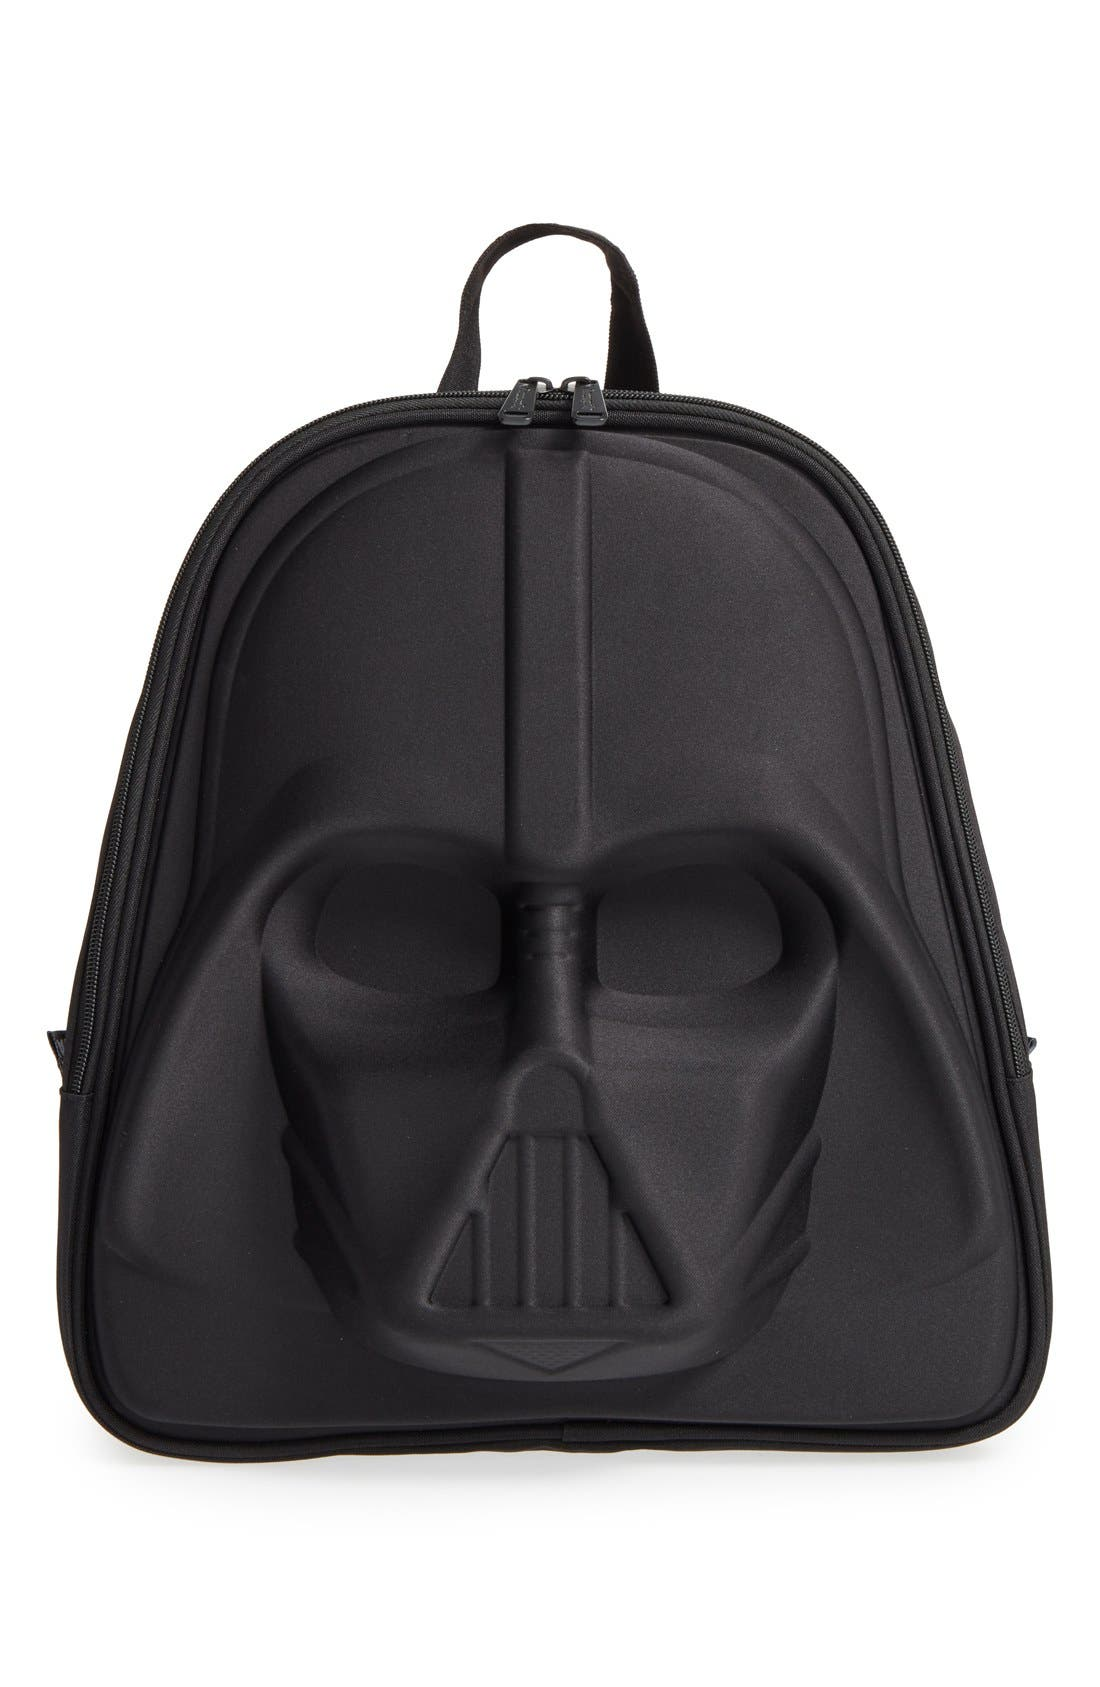 'Star Wars<sup>™</sup> - Darth Vader' Backpack,                         Main,                         color, 001